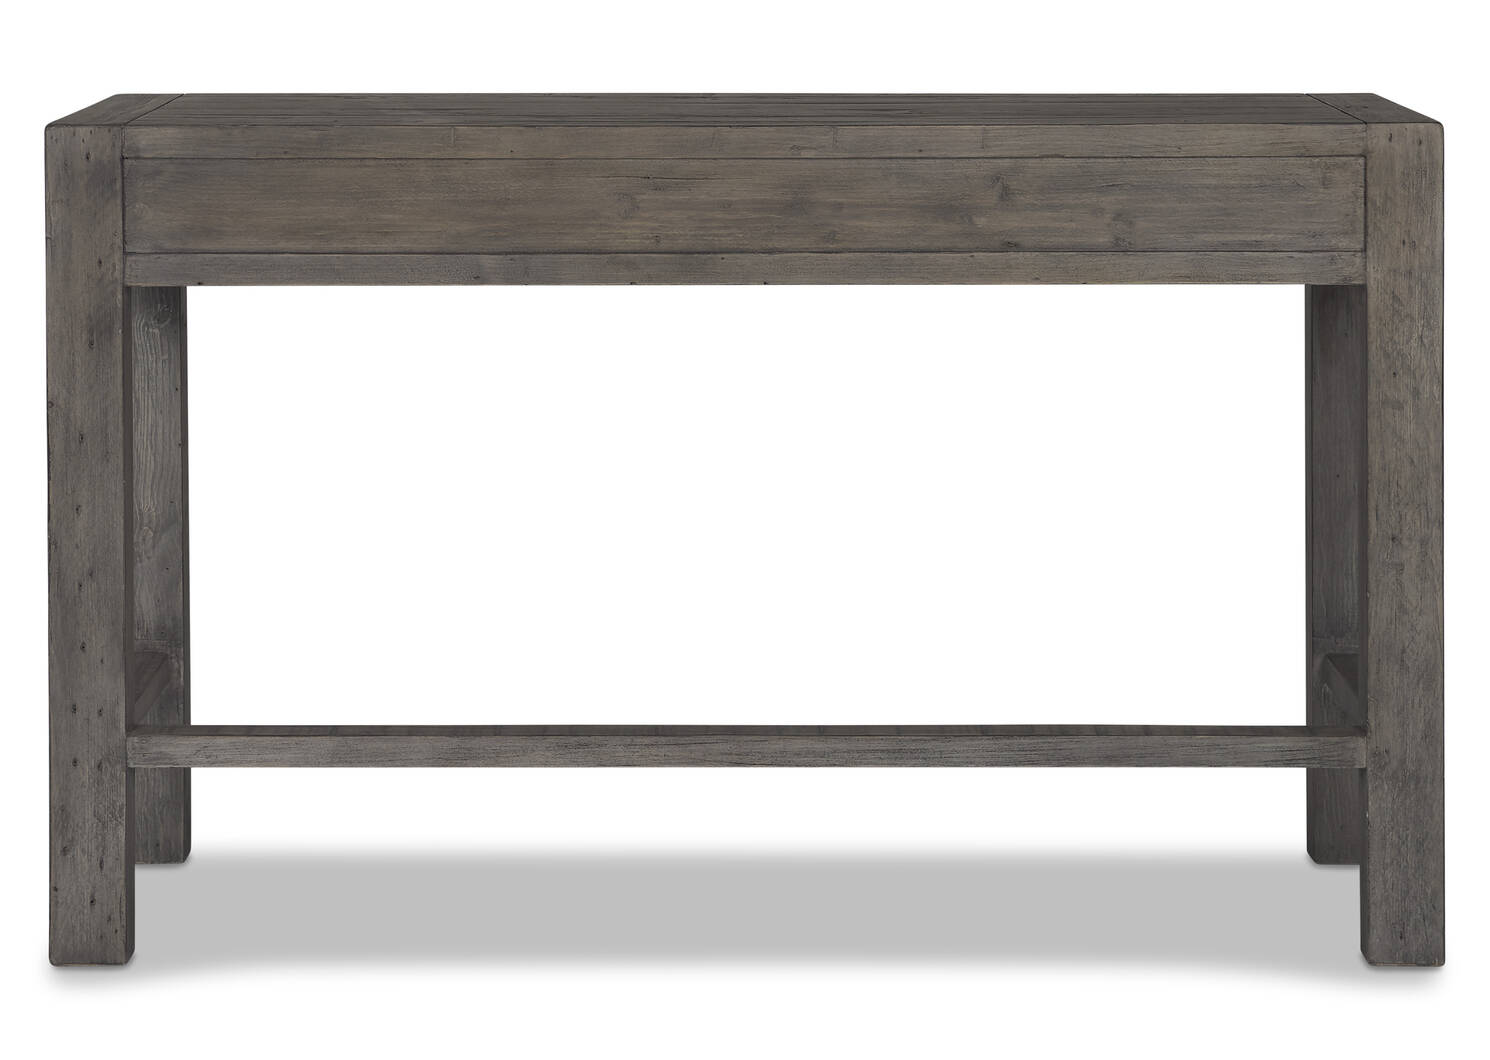 Table console Northwood -Stanton cendré